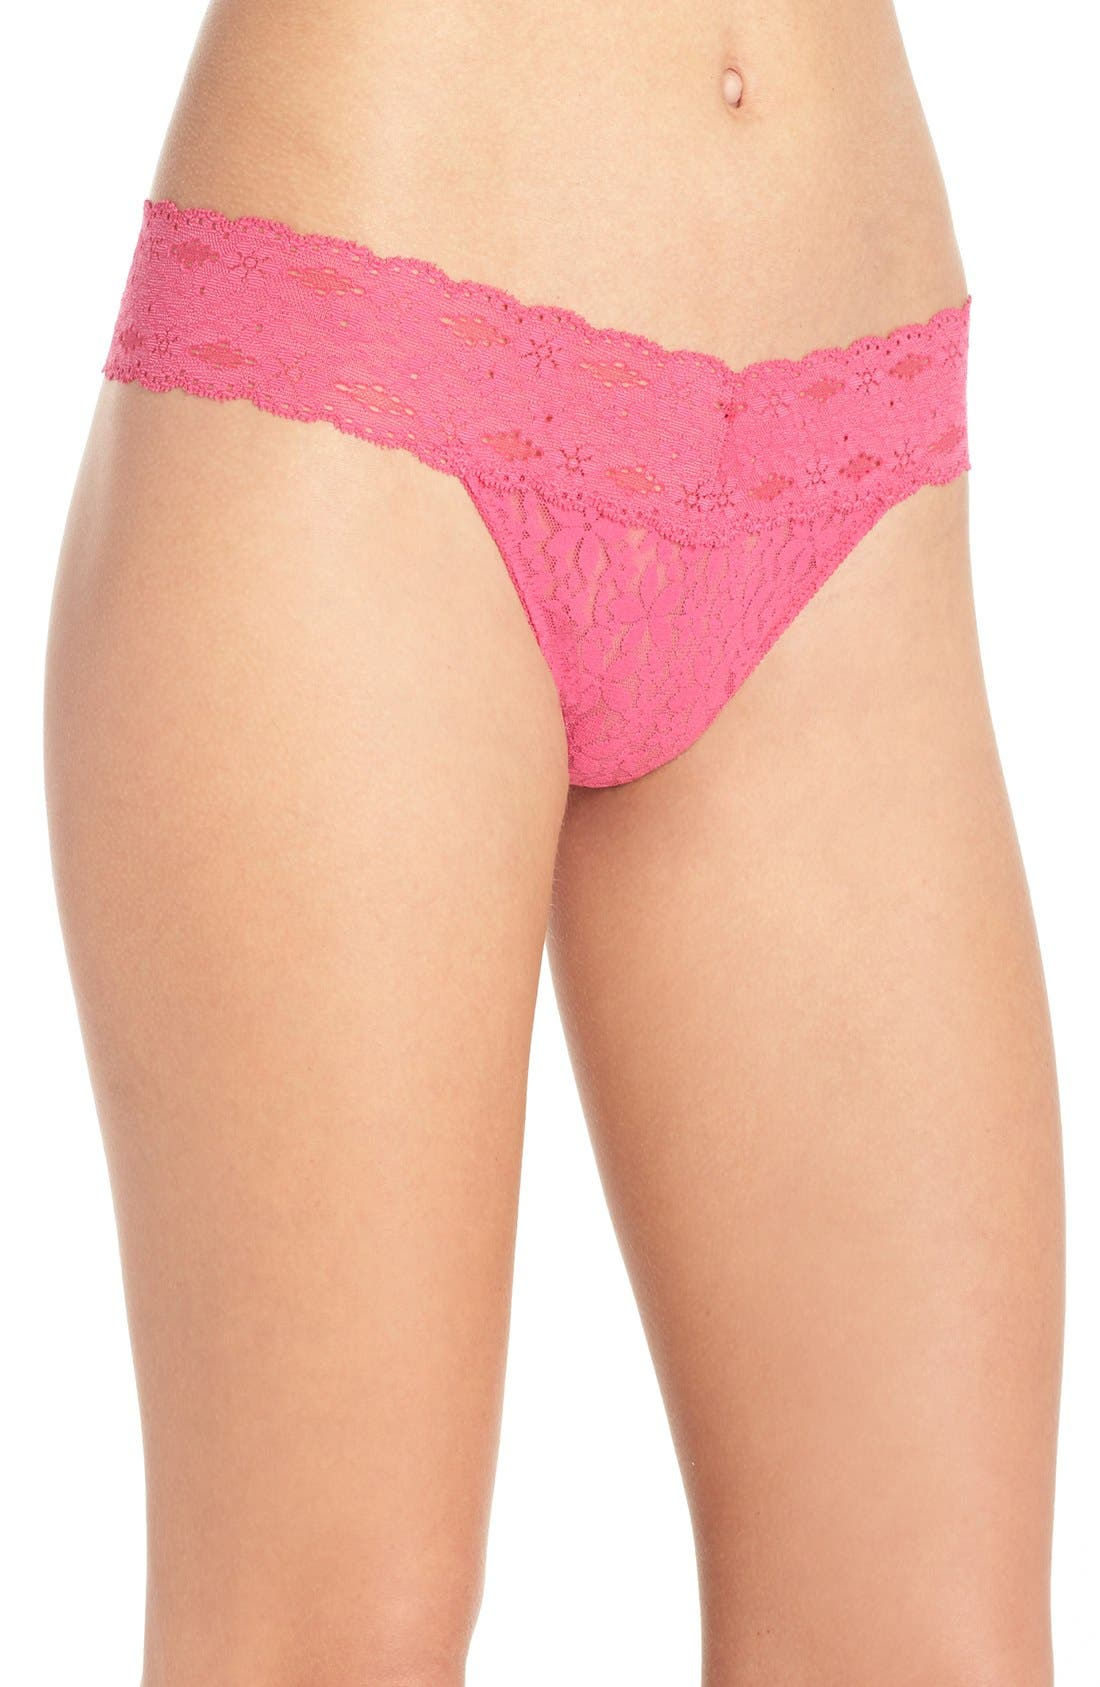 Halo Lace Thong,                             Alternate thumbnail 8, color,